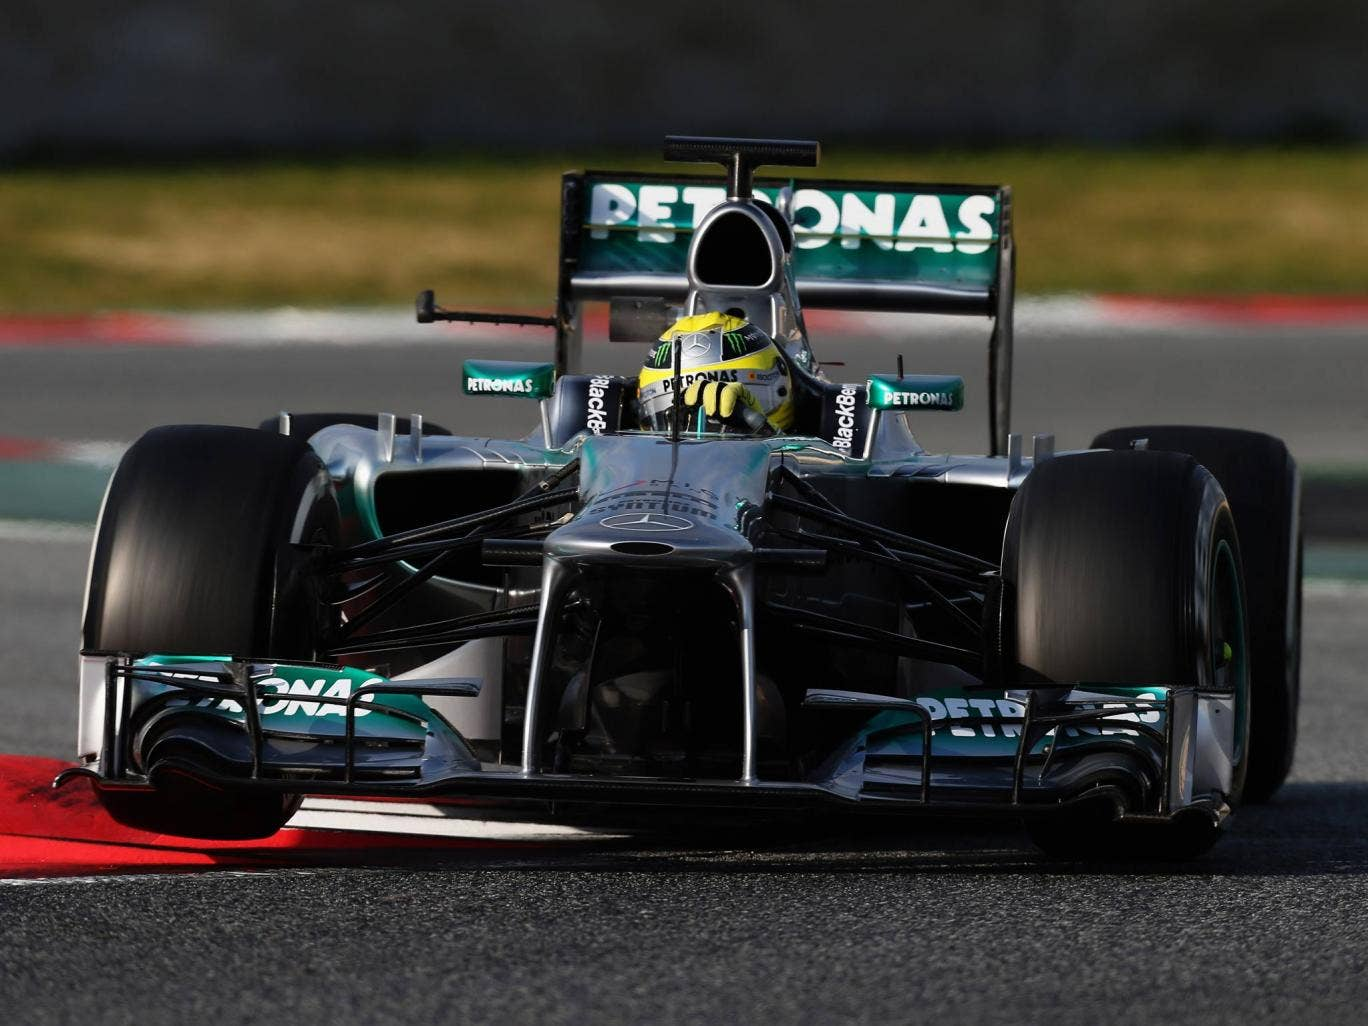 Nico Rosberg behind the wheel for Mercedes